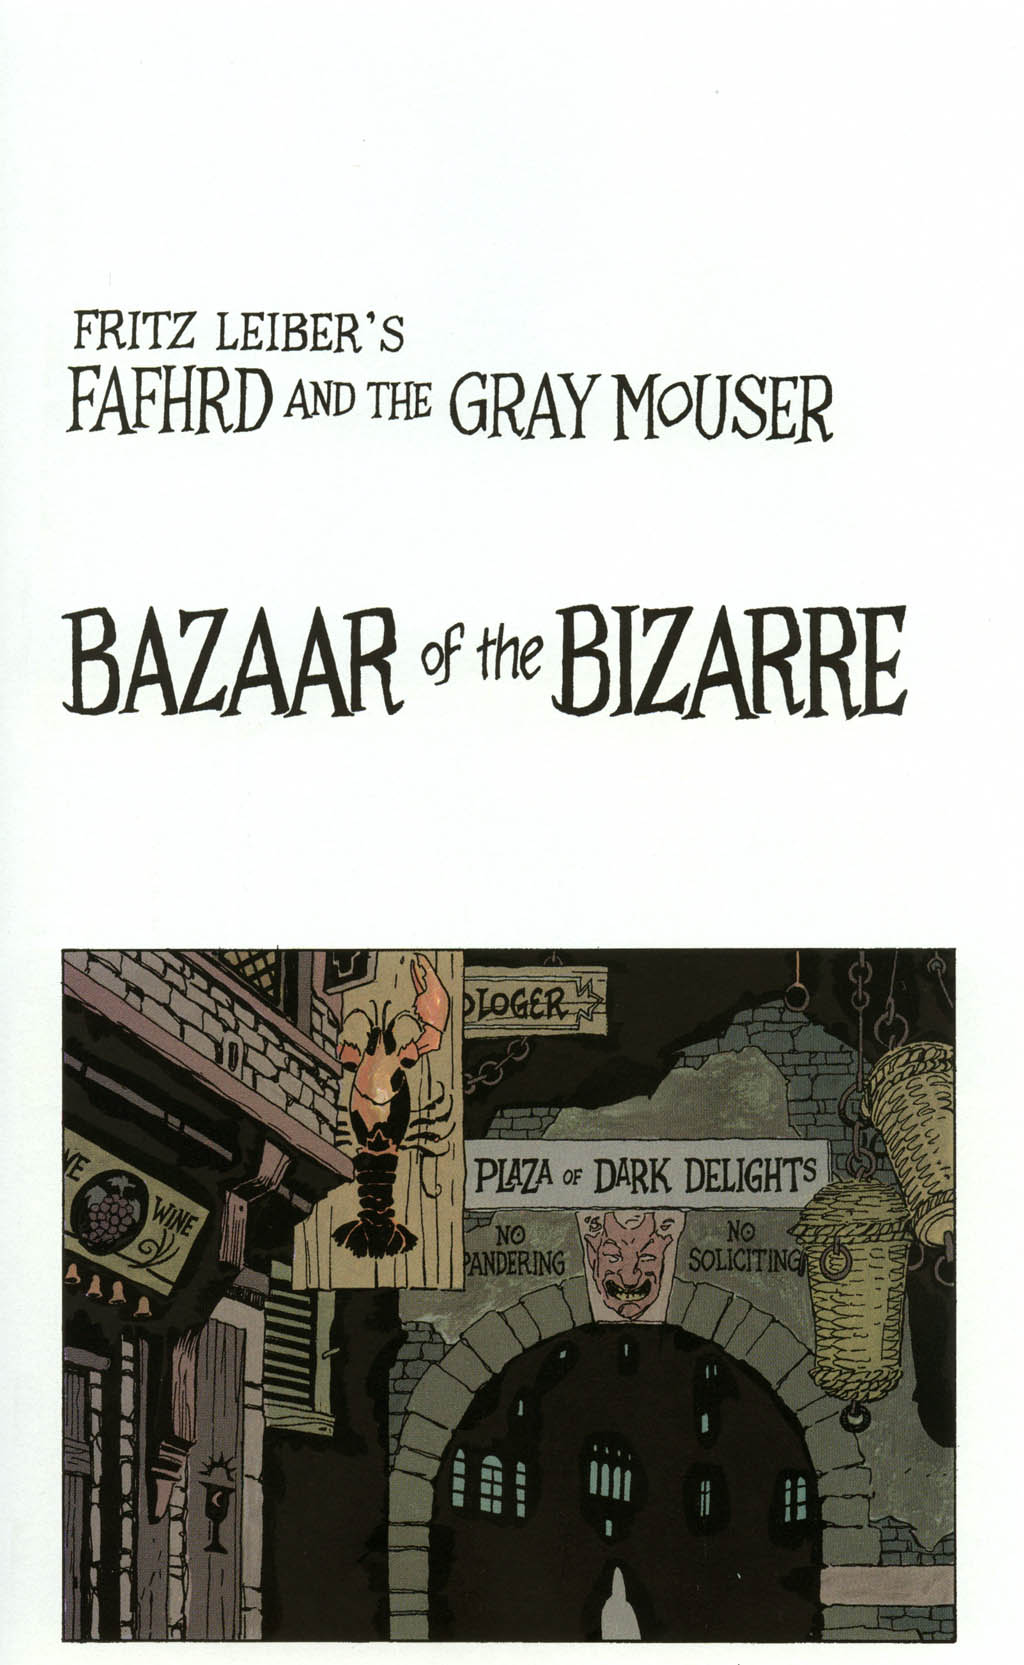 Read online Fafhrd and the Gray Mouser comic -  Issue #3 - 23